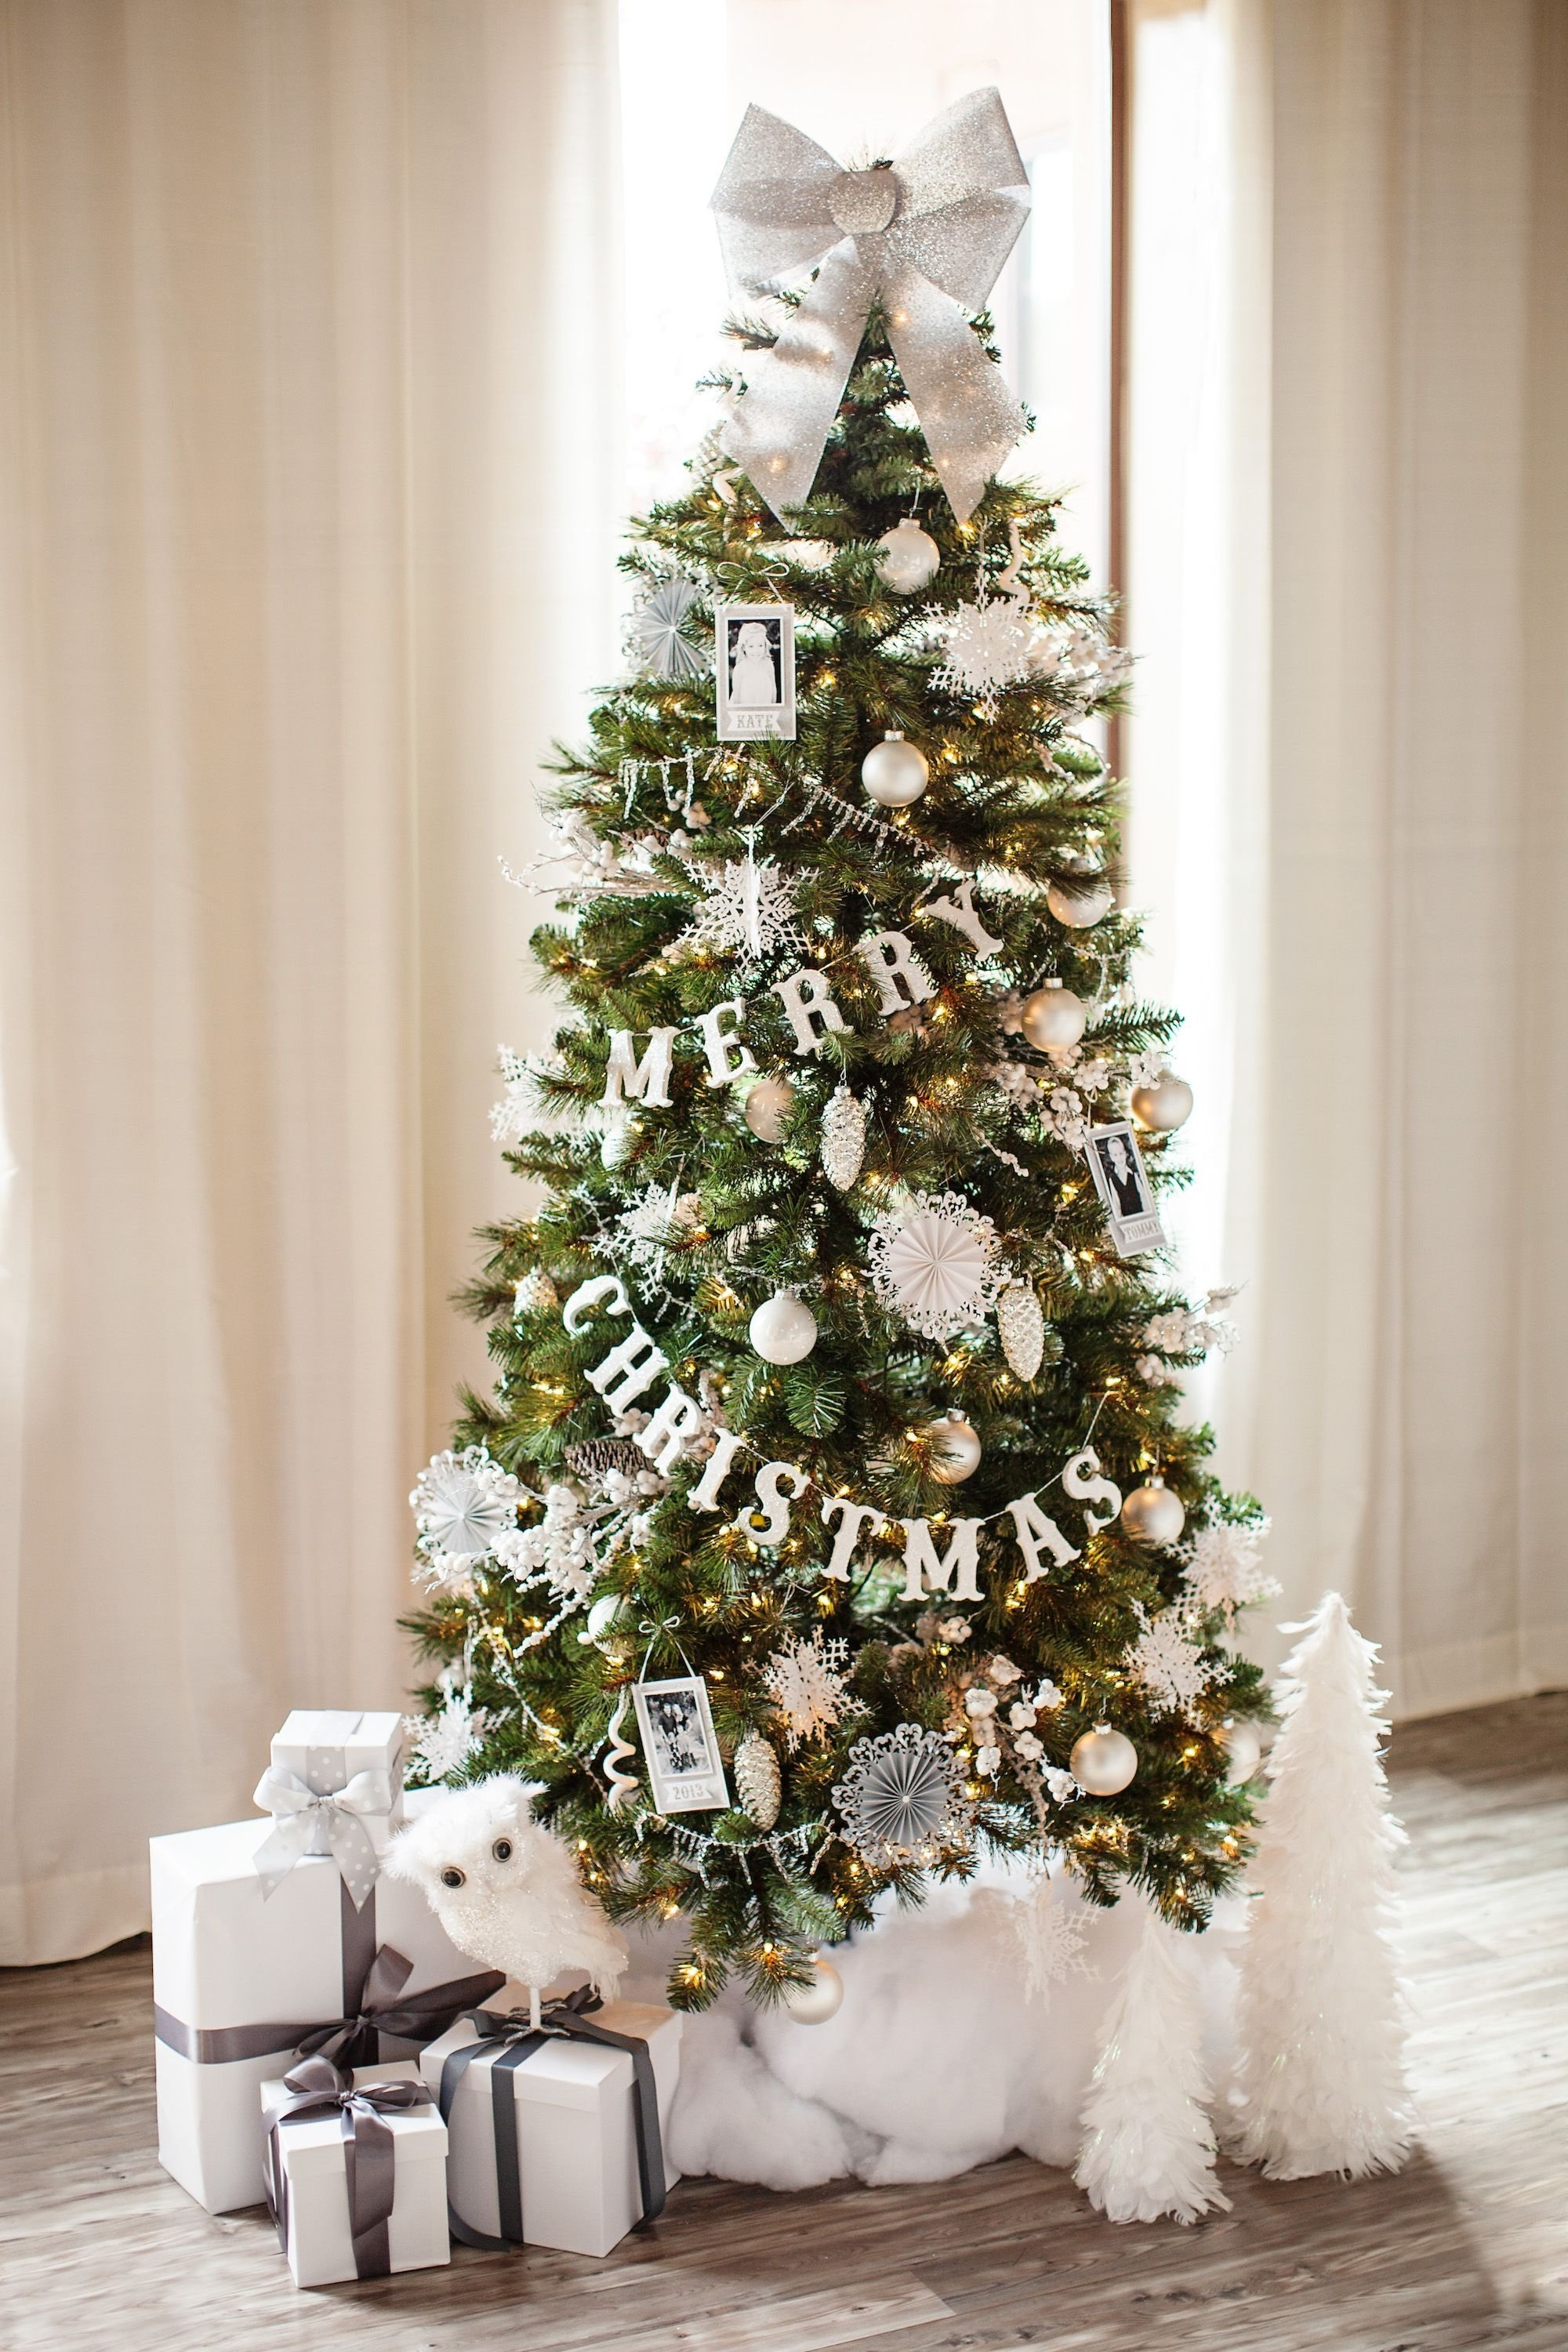 10 Ideal Ideas For Decorating Christmas Trees 30 beautiful christmas tree decoration ideas 2017 4 2020